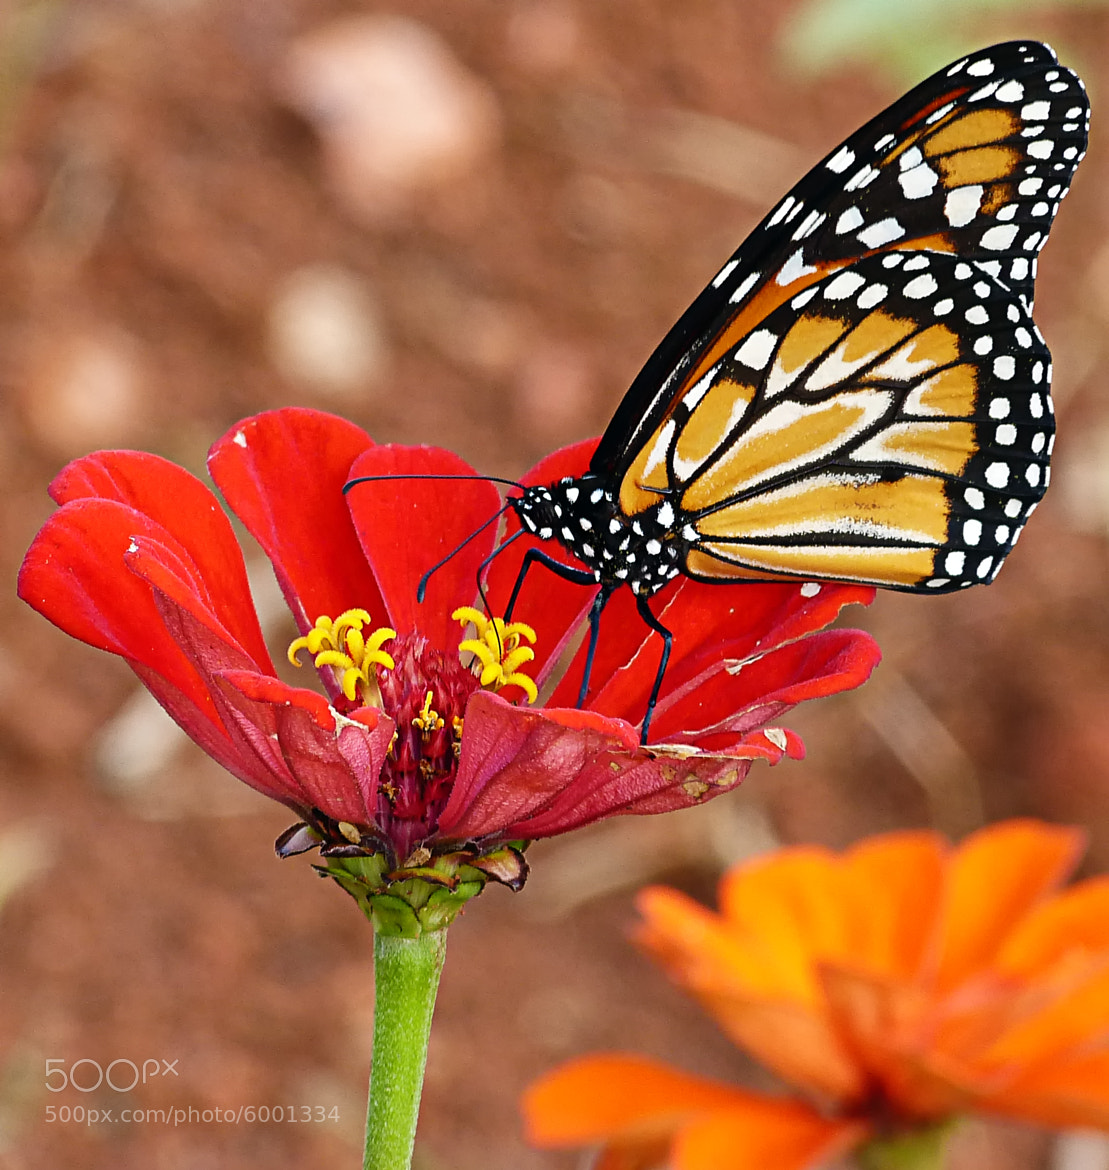 Photograph Monarch looks good in red by Pedro Henrique Evangelista on 500px